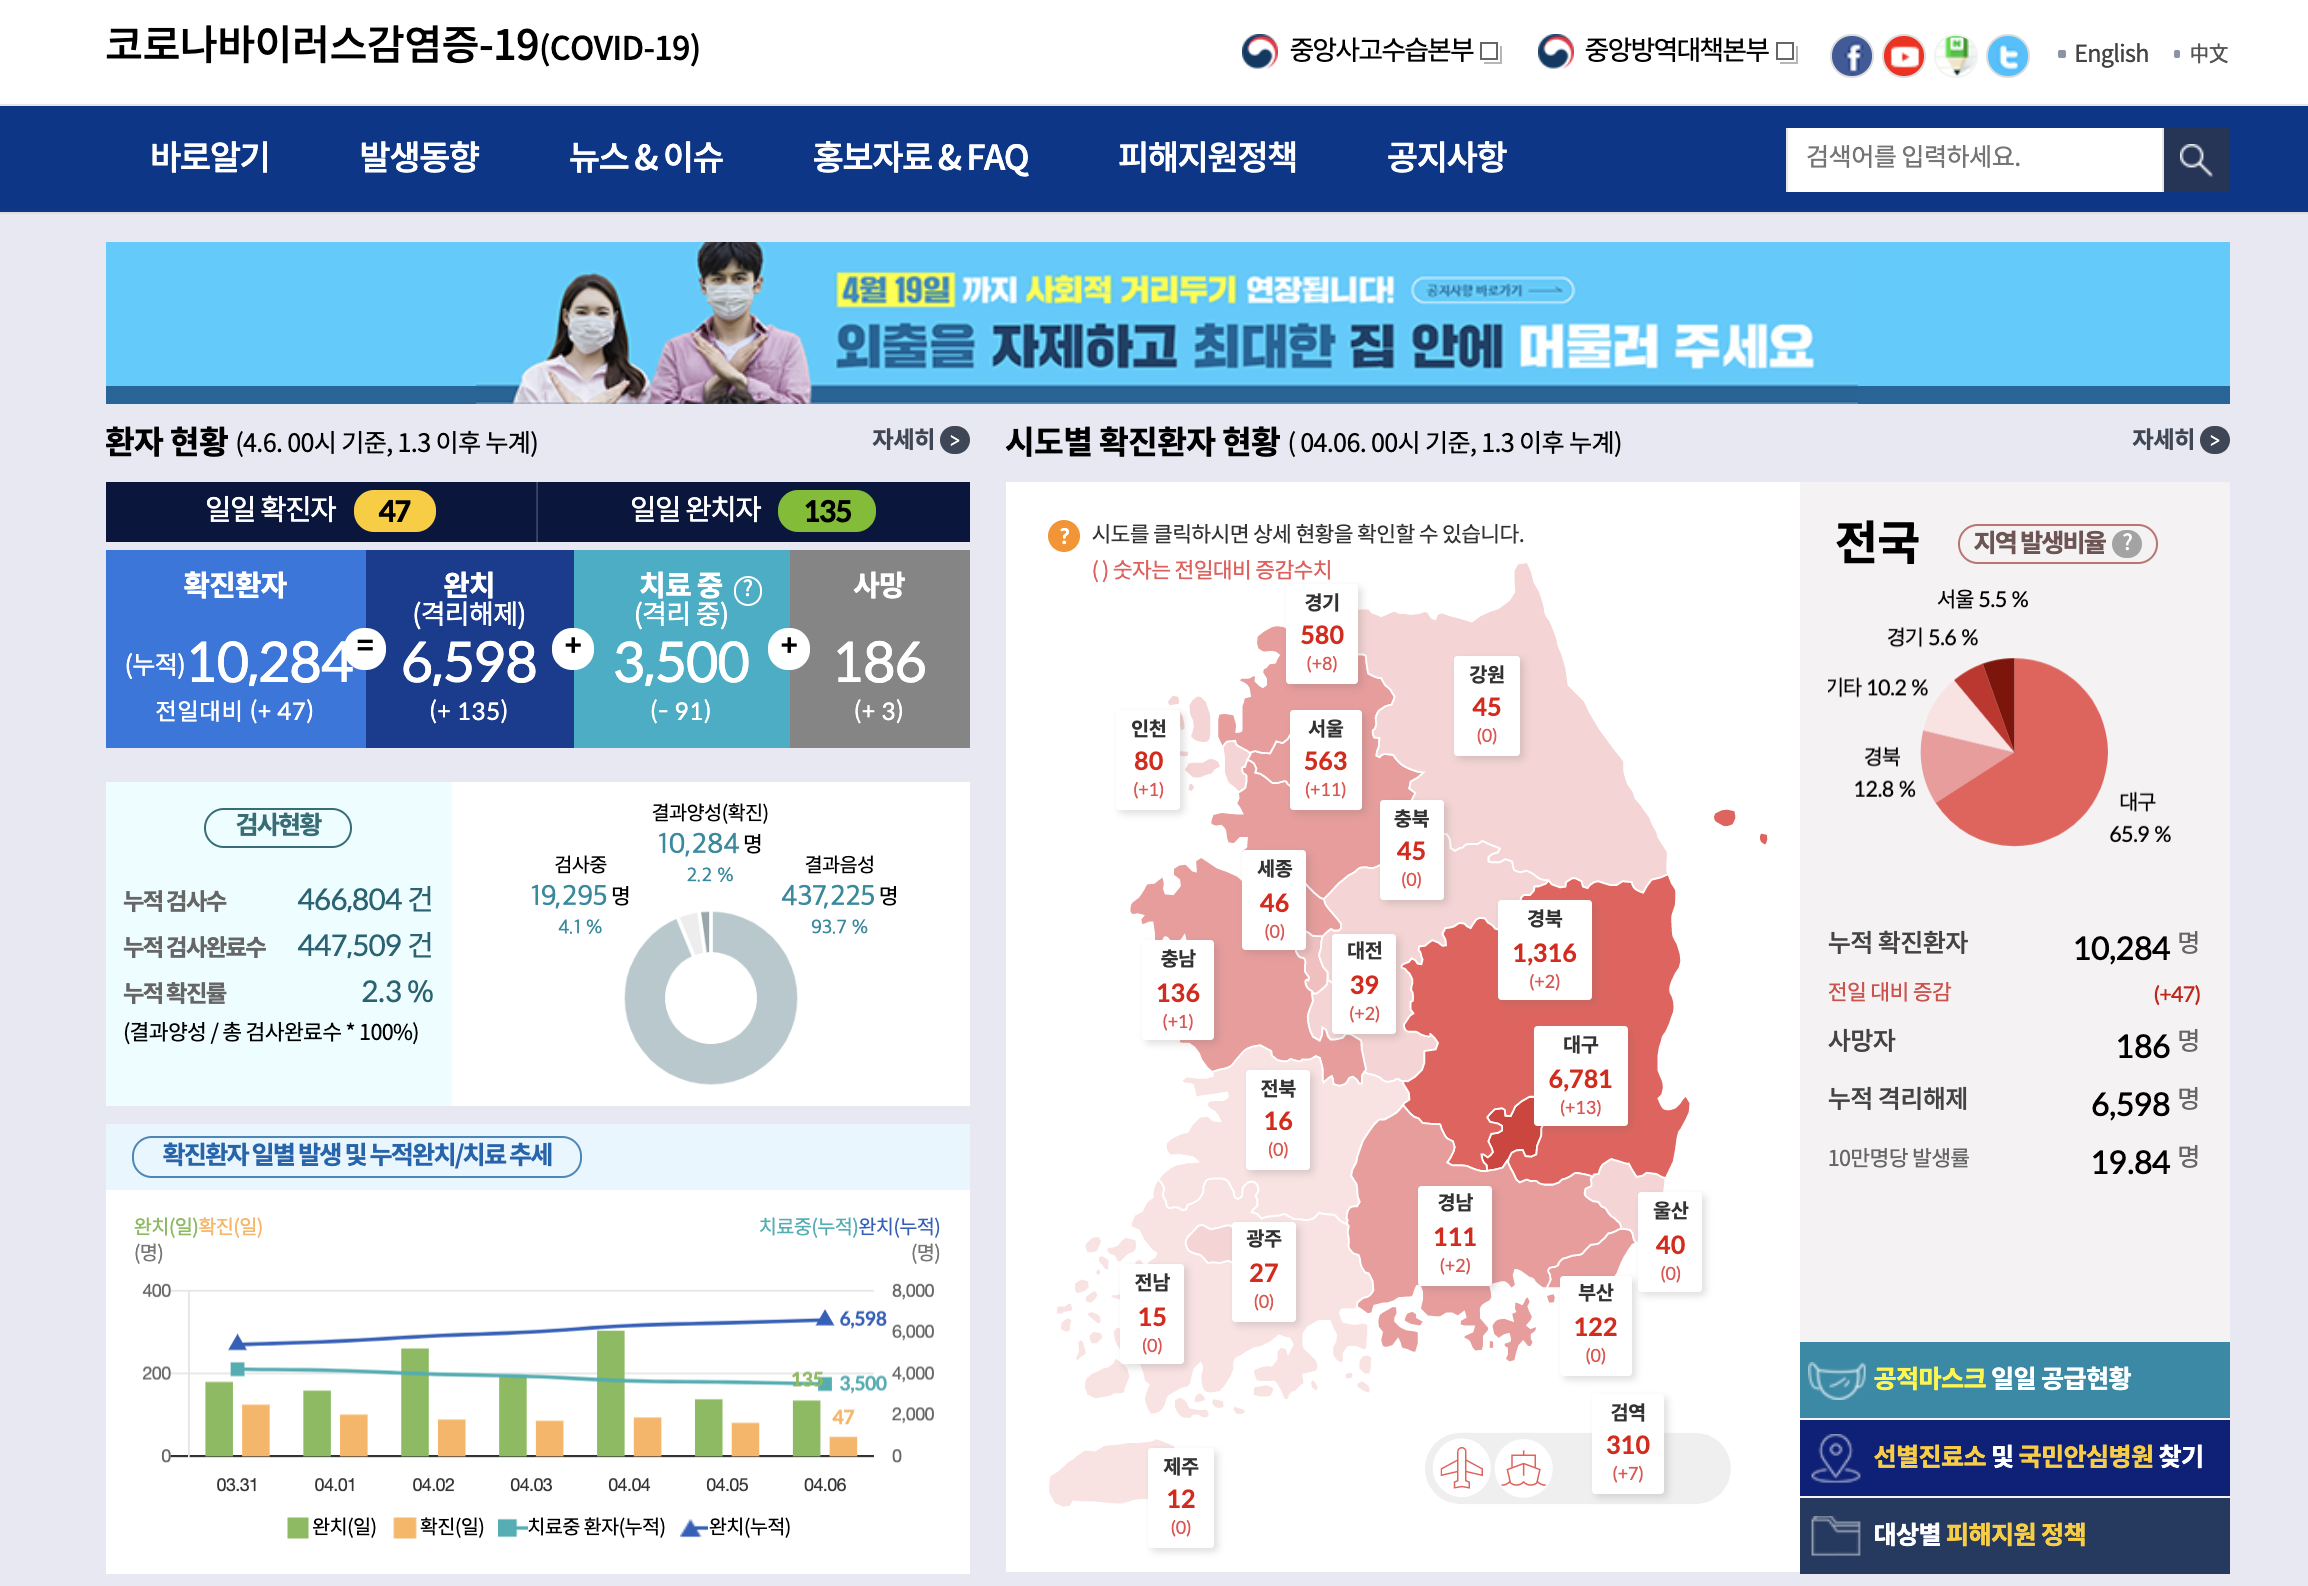 South Korean national government COVID-19 info homepage